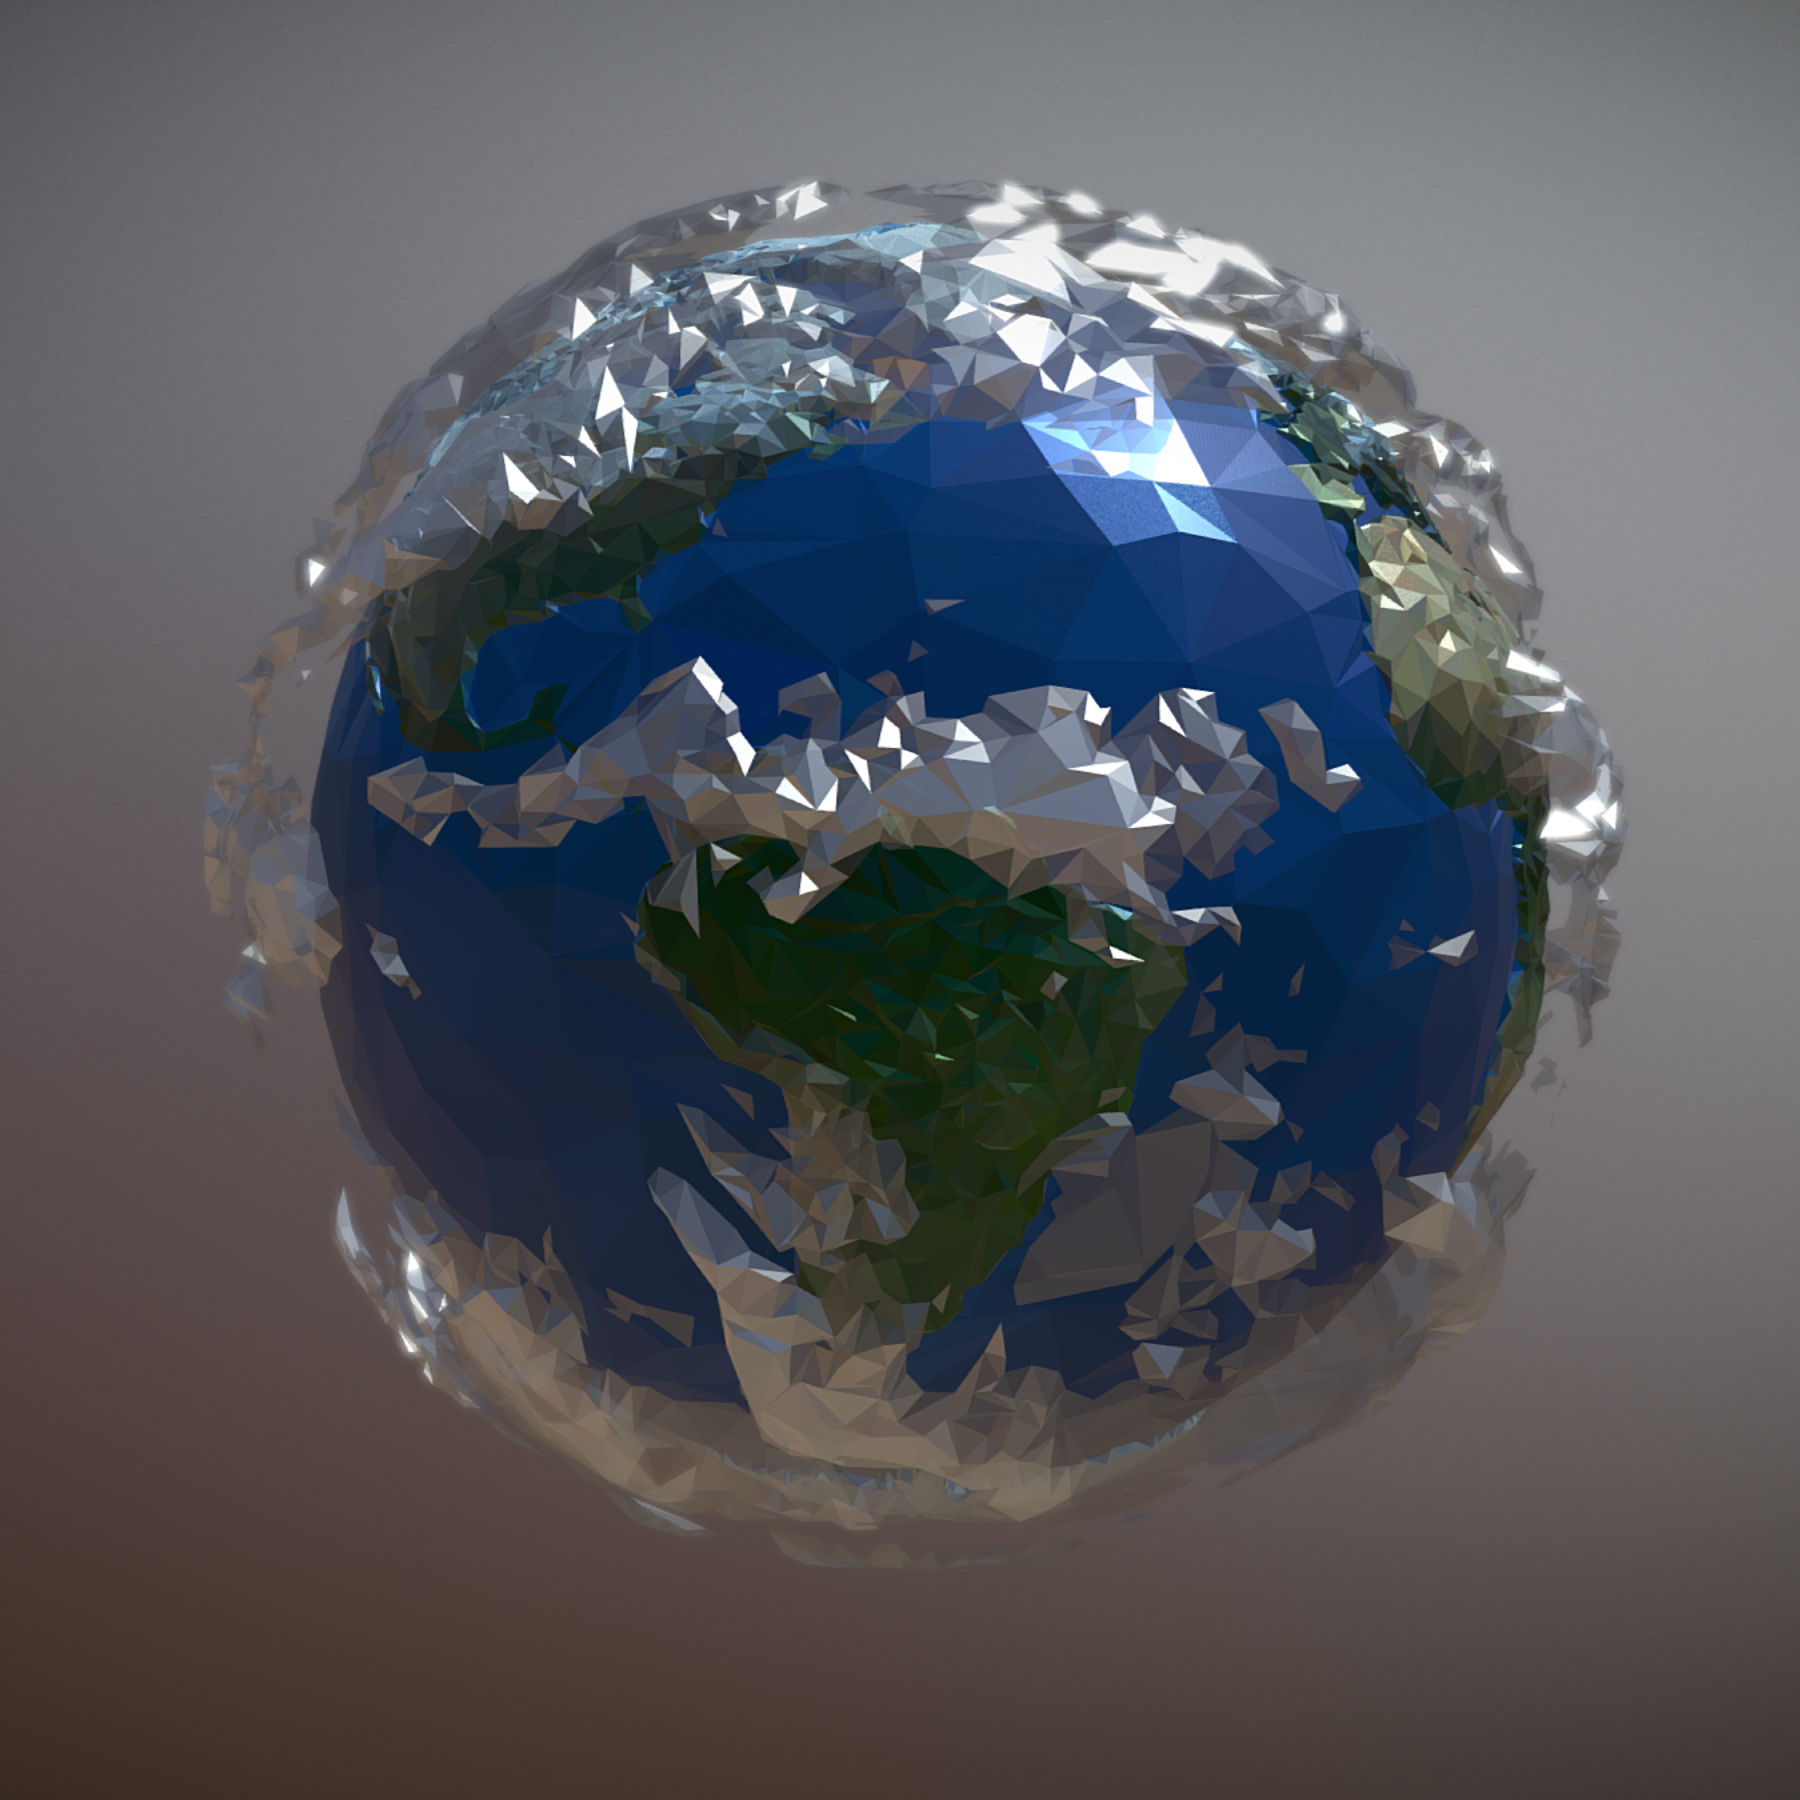 animated planet earth 3d model 3ds max fbx ma mb tga targa icb vda vst pix obj 271040